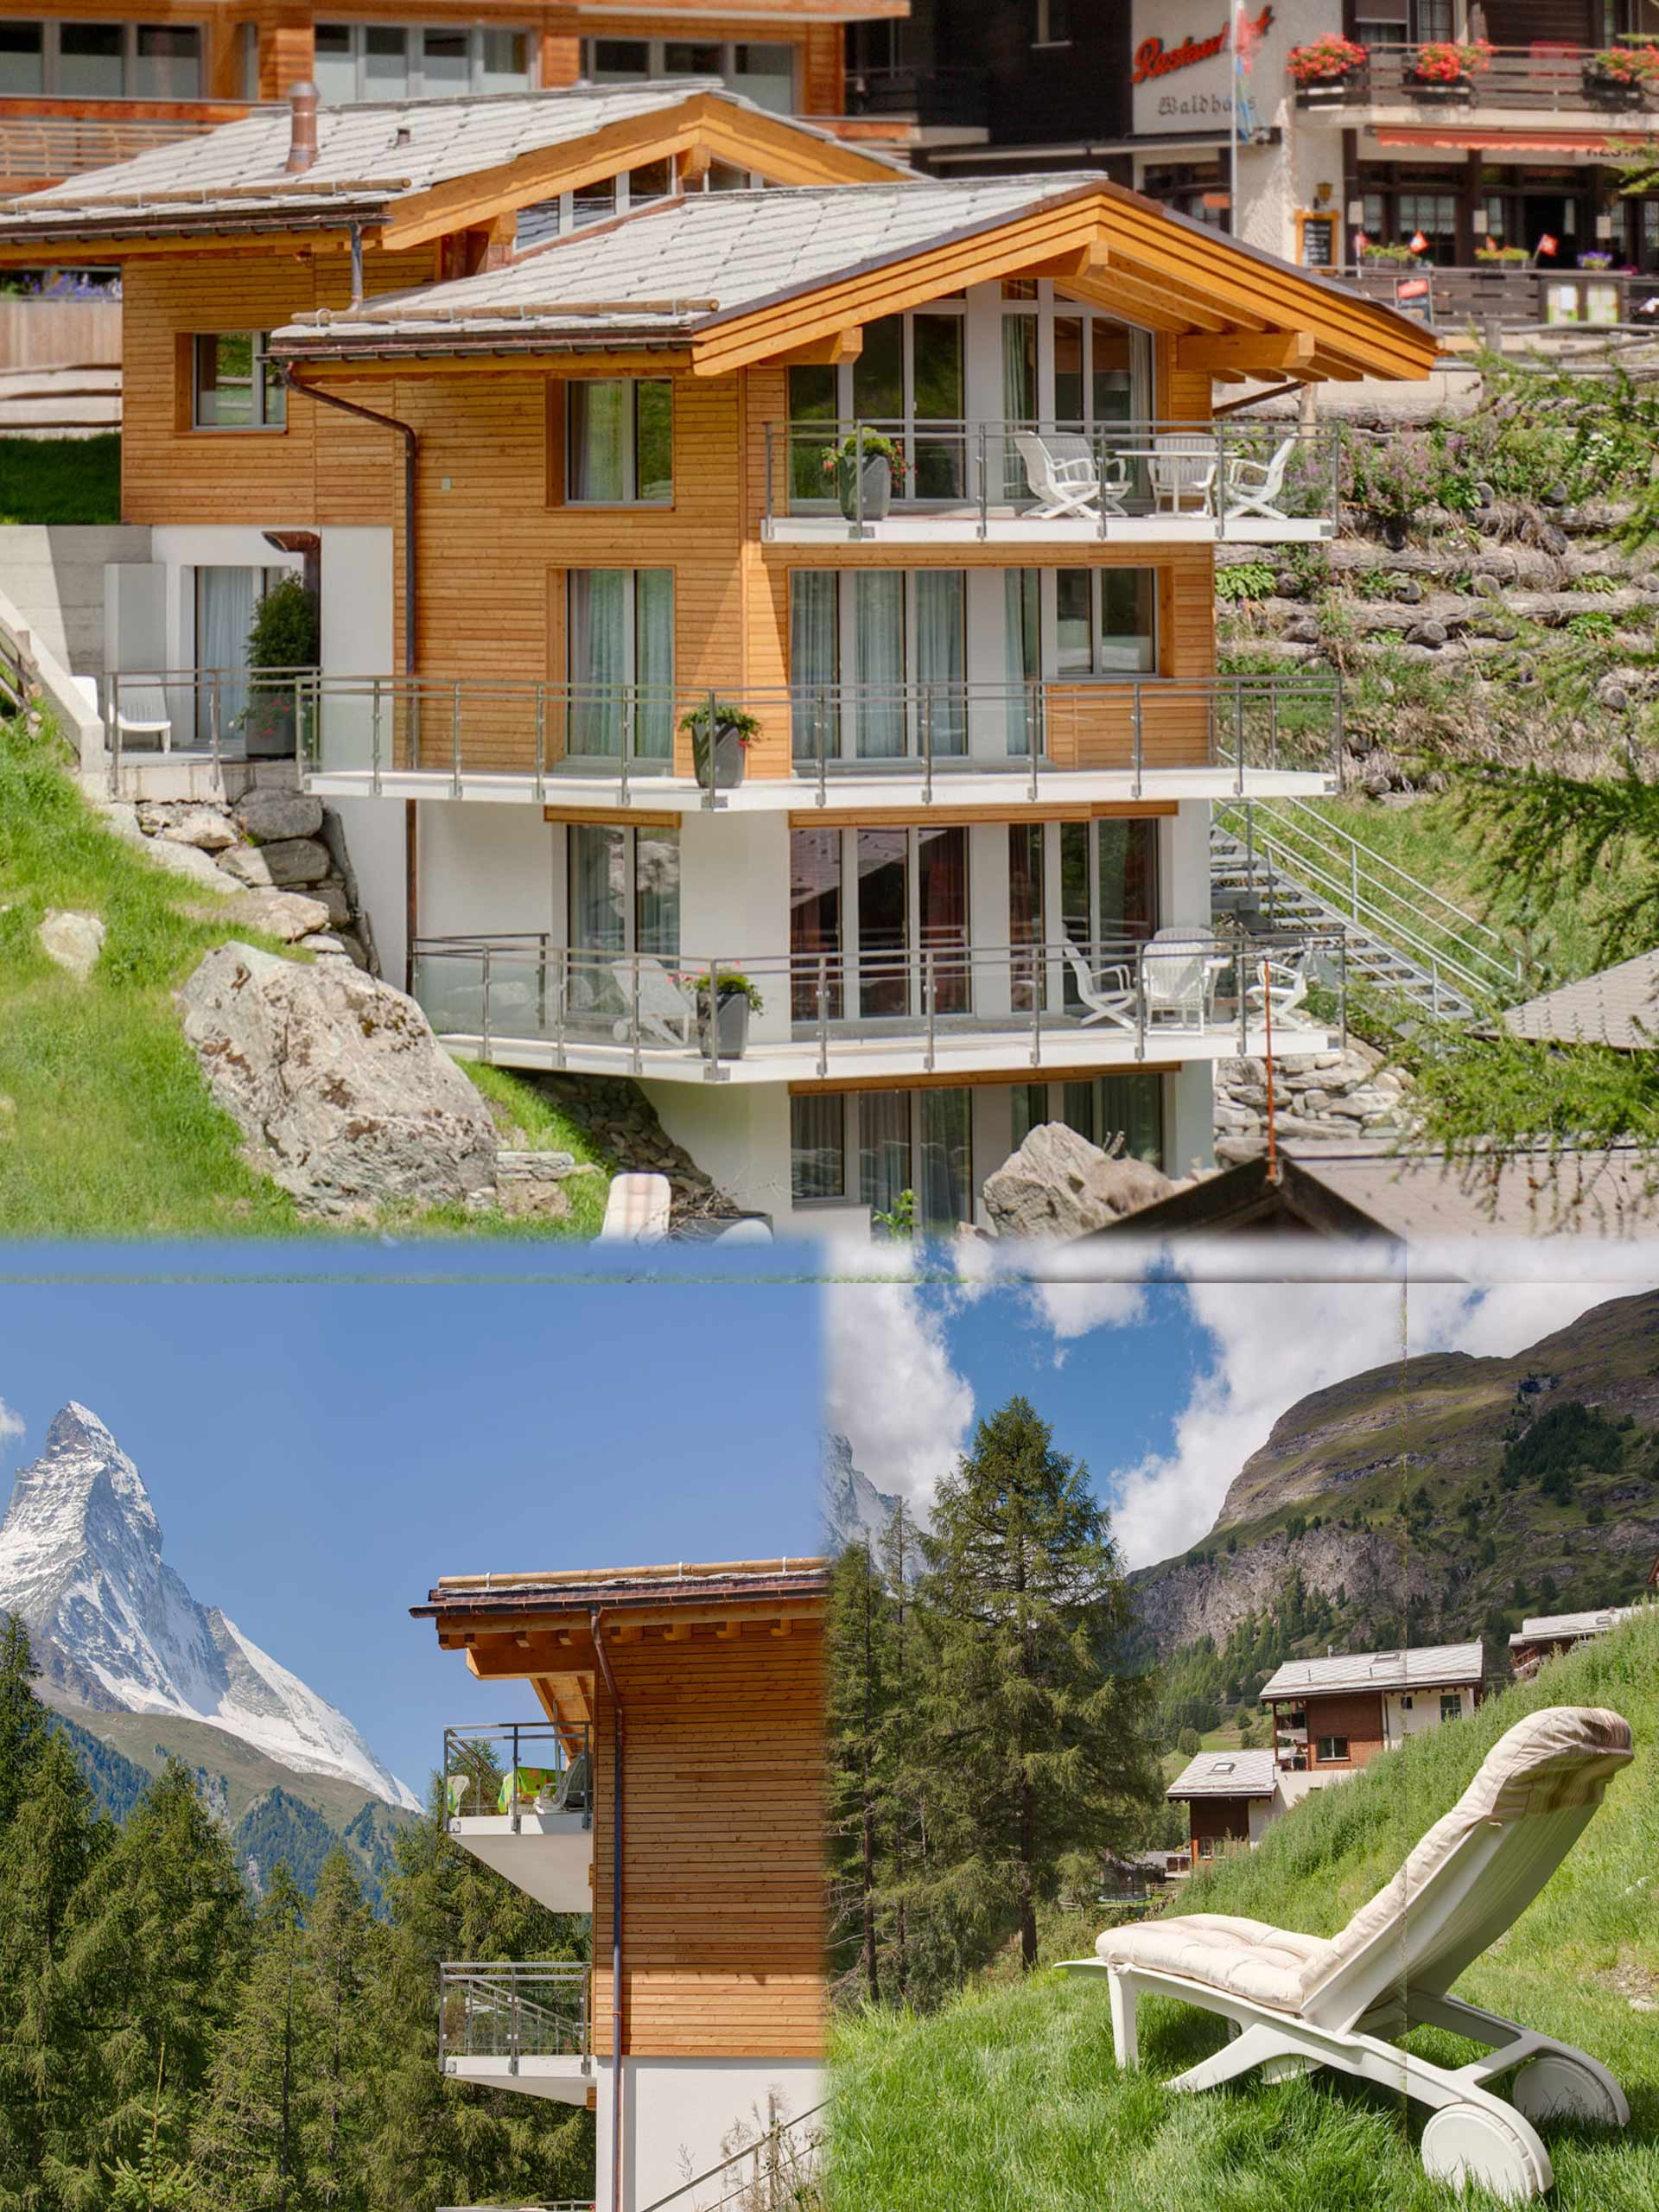 You will find House Gloria in Winkelmatten. Winkelmatten is surrounded by flowery meadows at 1700 m altitude and is a district of Zermatt, built on the sunny side of the slope to the south of the village.